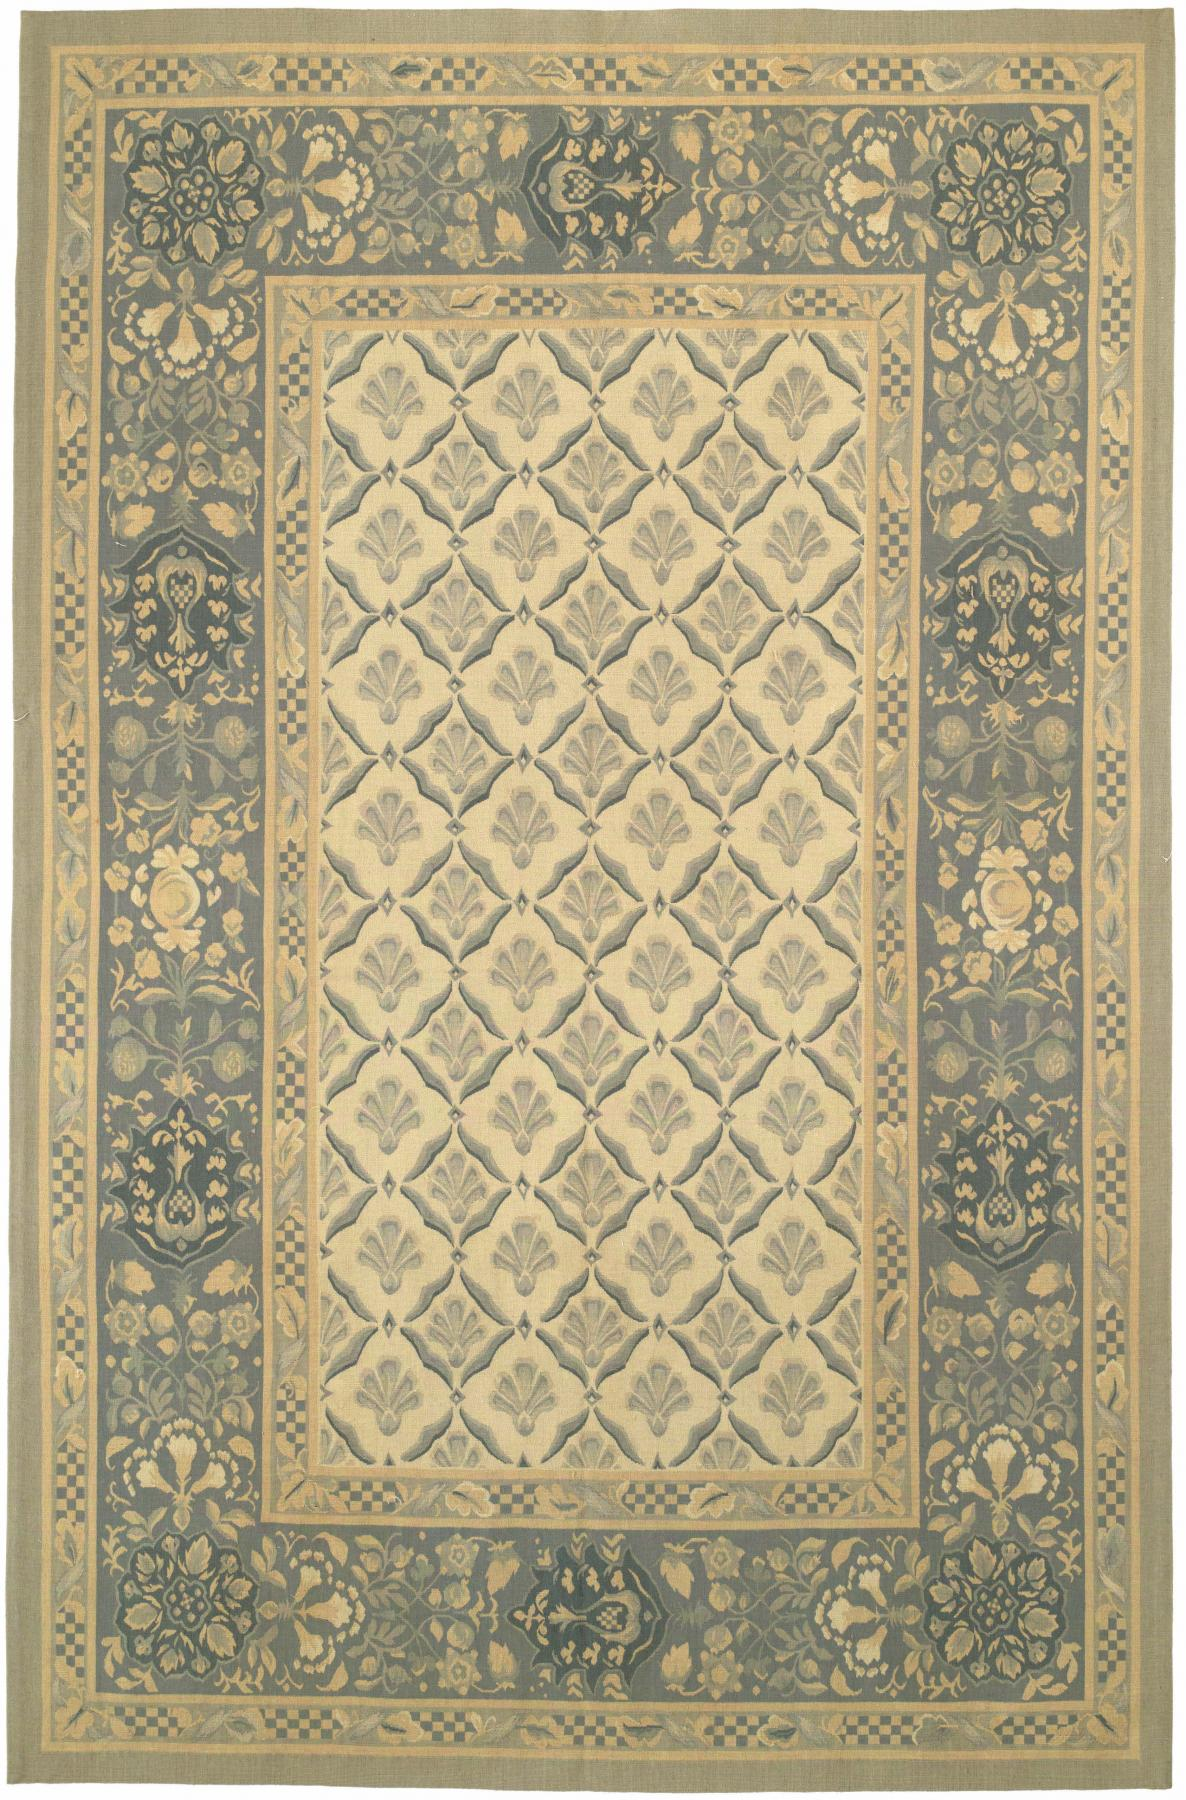 100 french aubusson rugs popular french aubusson rugs buy c